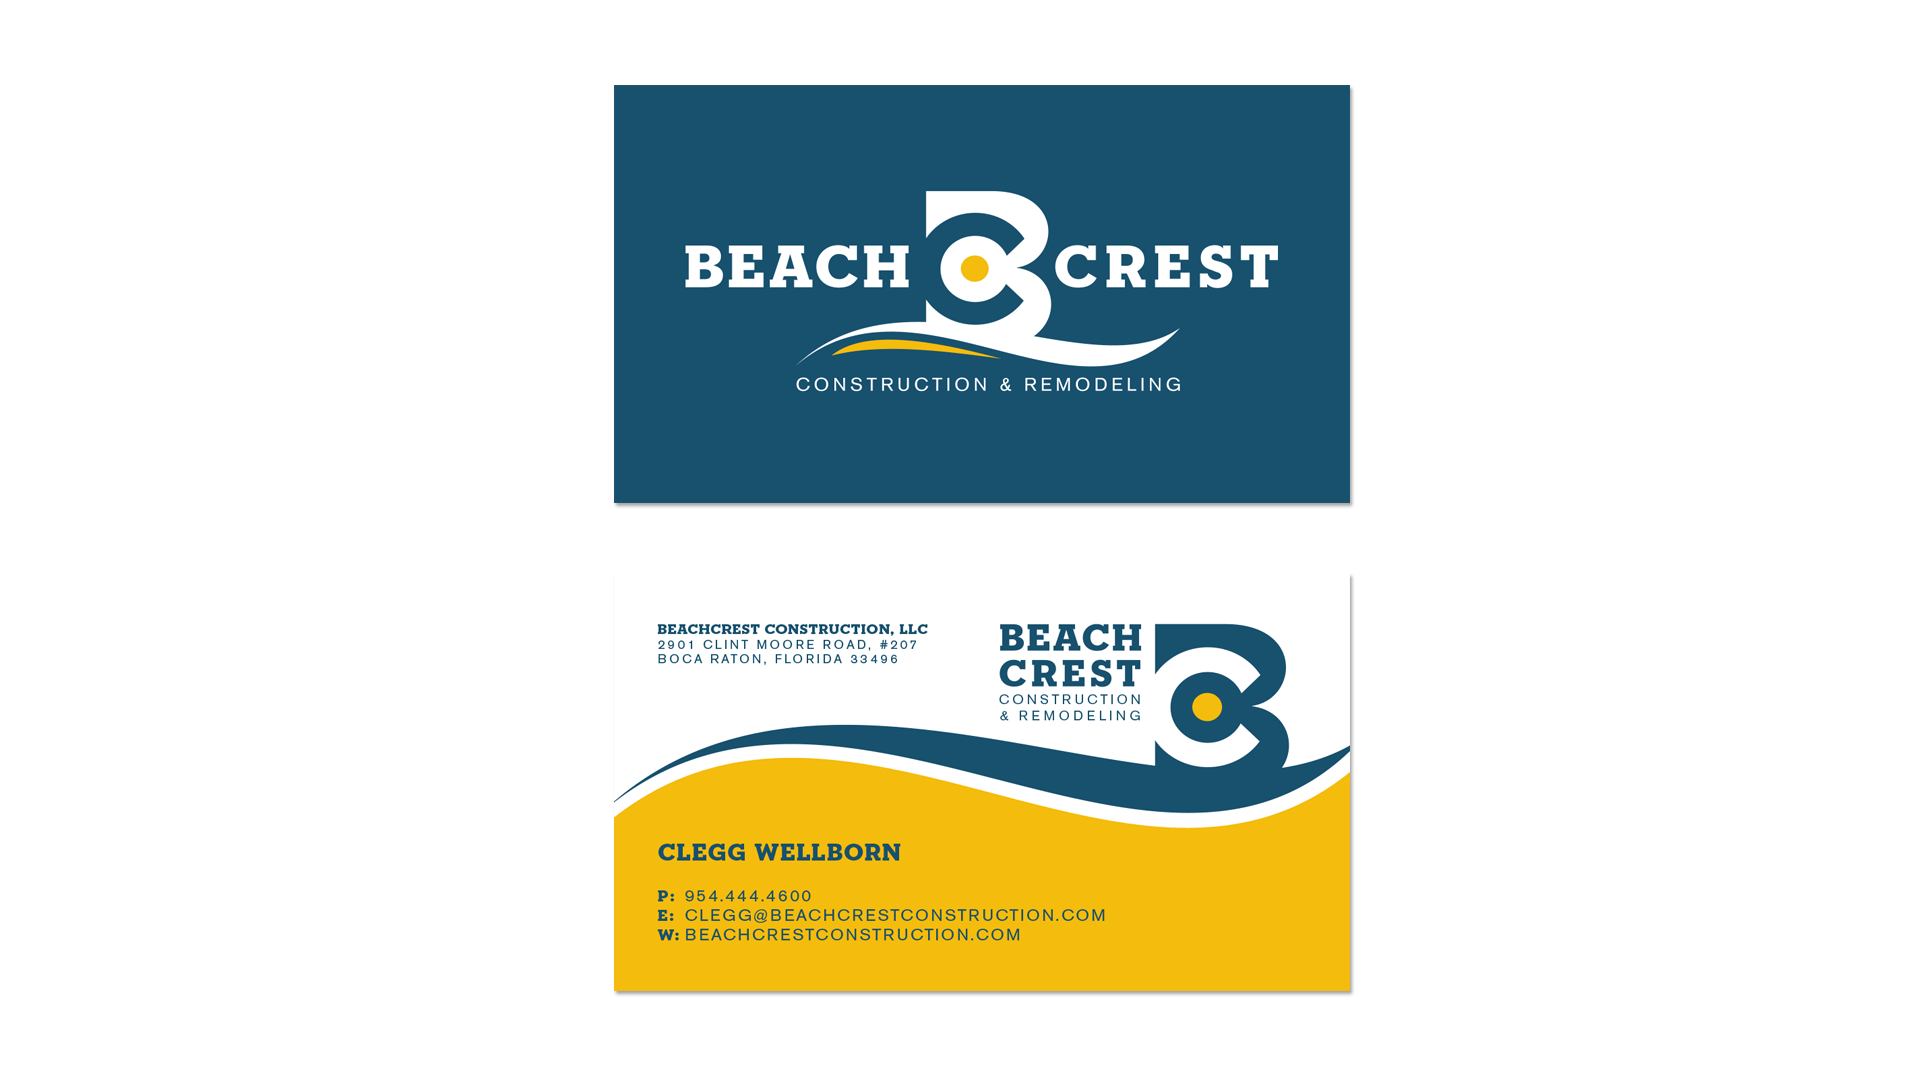 BRIAN HILL DESIGN: Beach Crest Construction & Remodeling